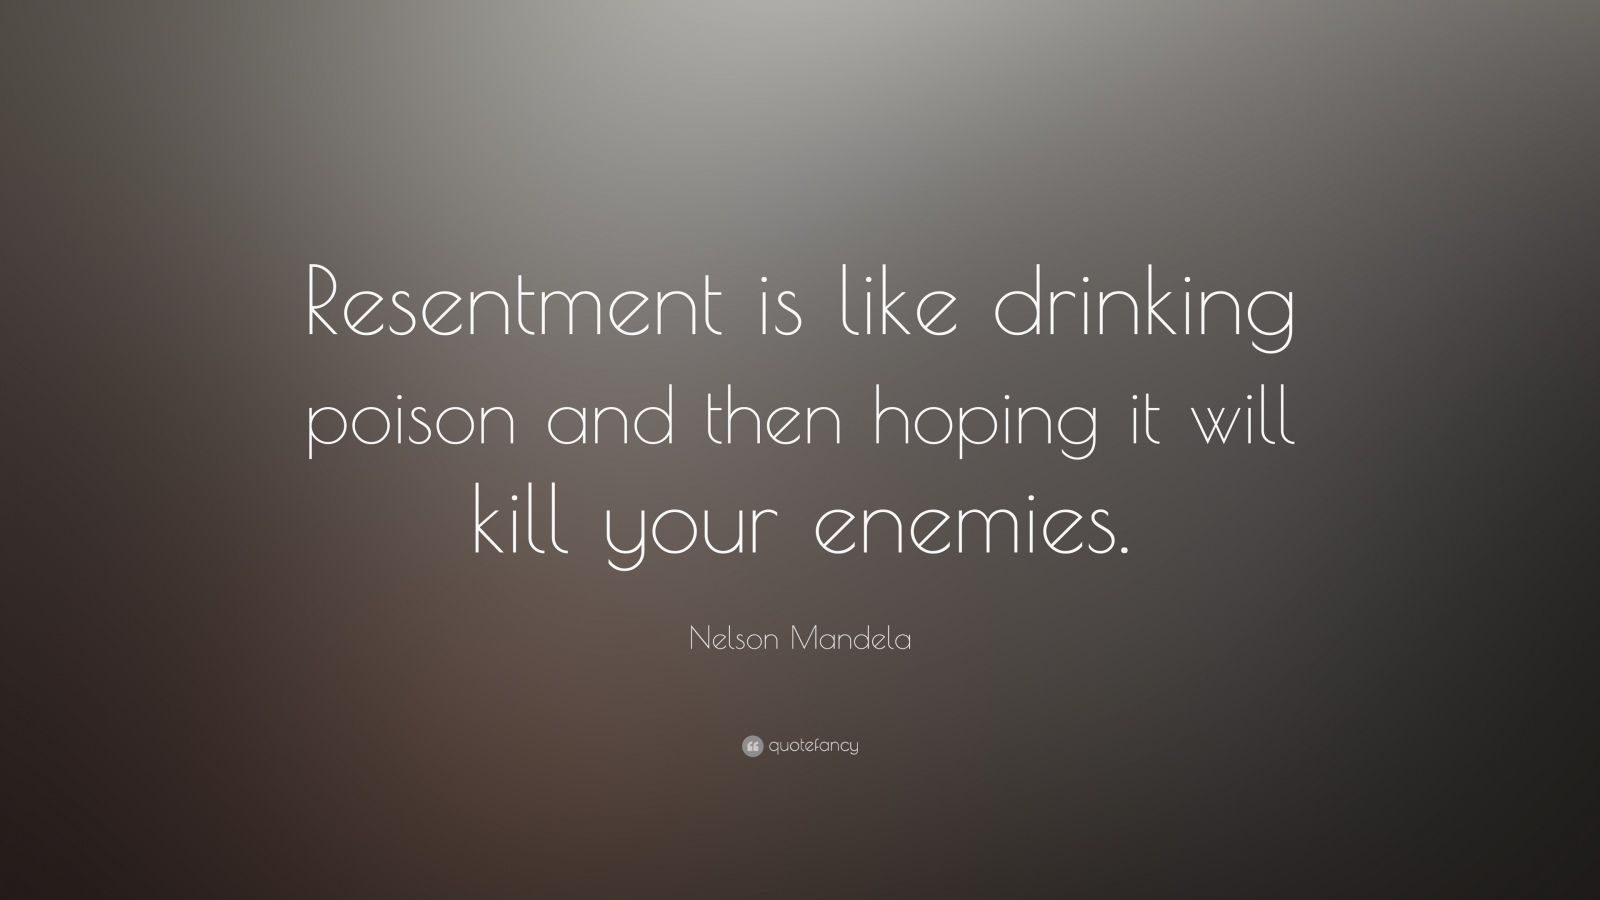 """Nelson Mandela Quote: """"Resentment is like drinking poison and then hoping it will kill your enemies."""""""